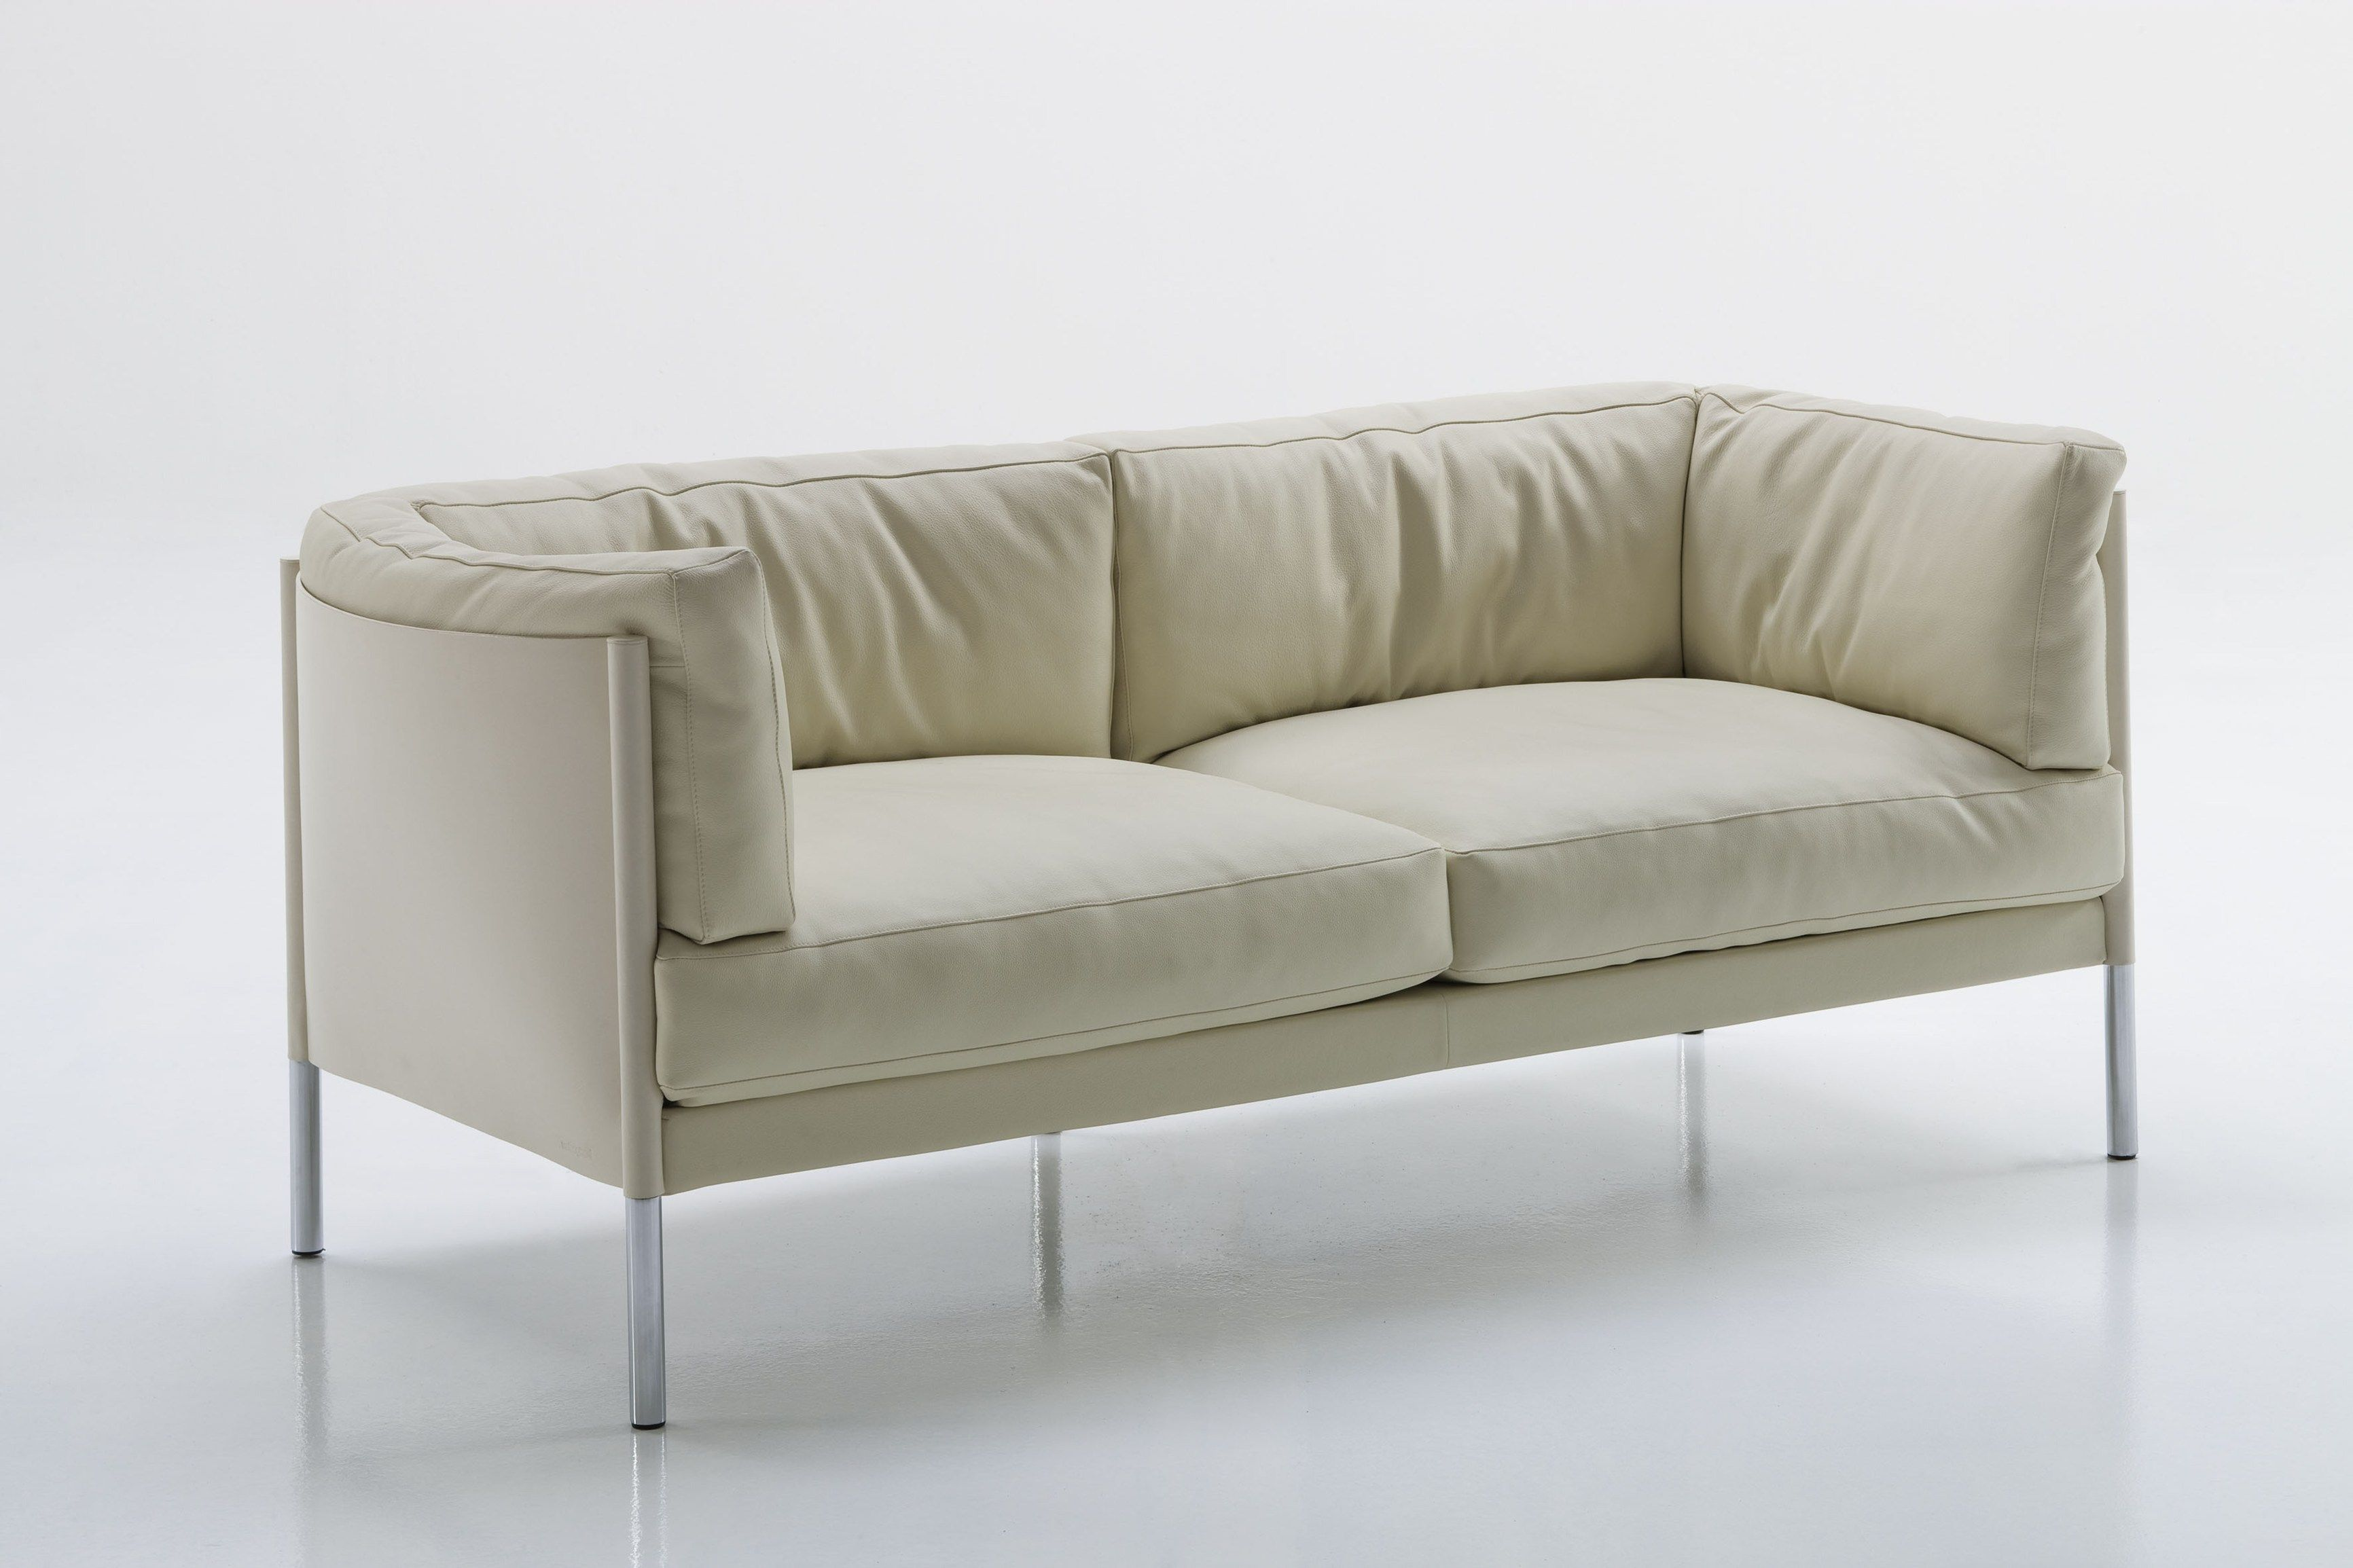 Upholstered Leather Sofa Kelly Kelly Collection By Matteograssi Design Piero Lissoni Furniture Leather Sofa Sofa